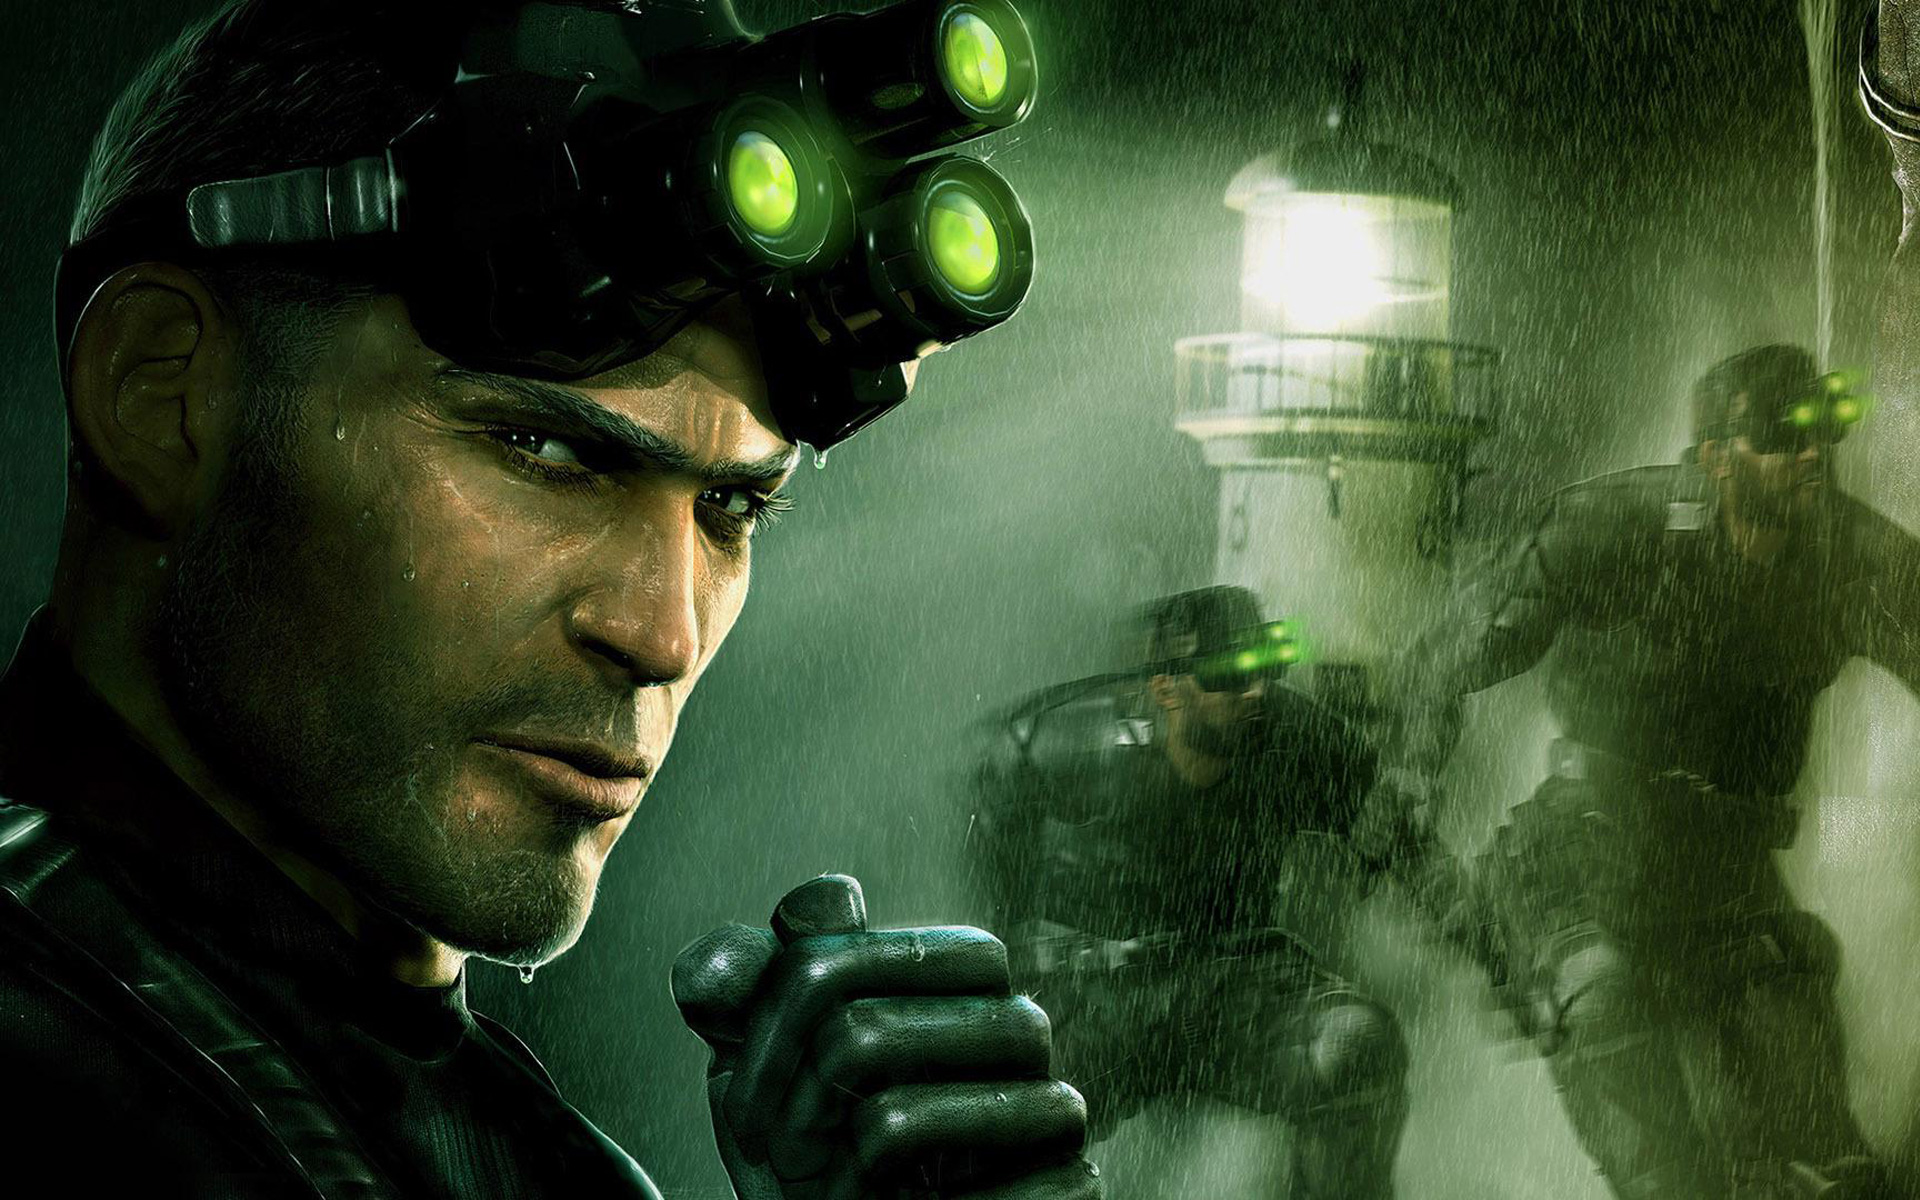 Splinter Cell: Pandora Tomorrow Wallpaper in 1920x1200